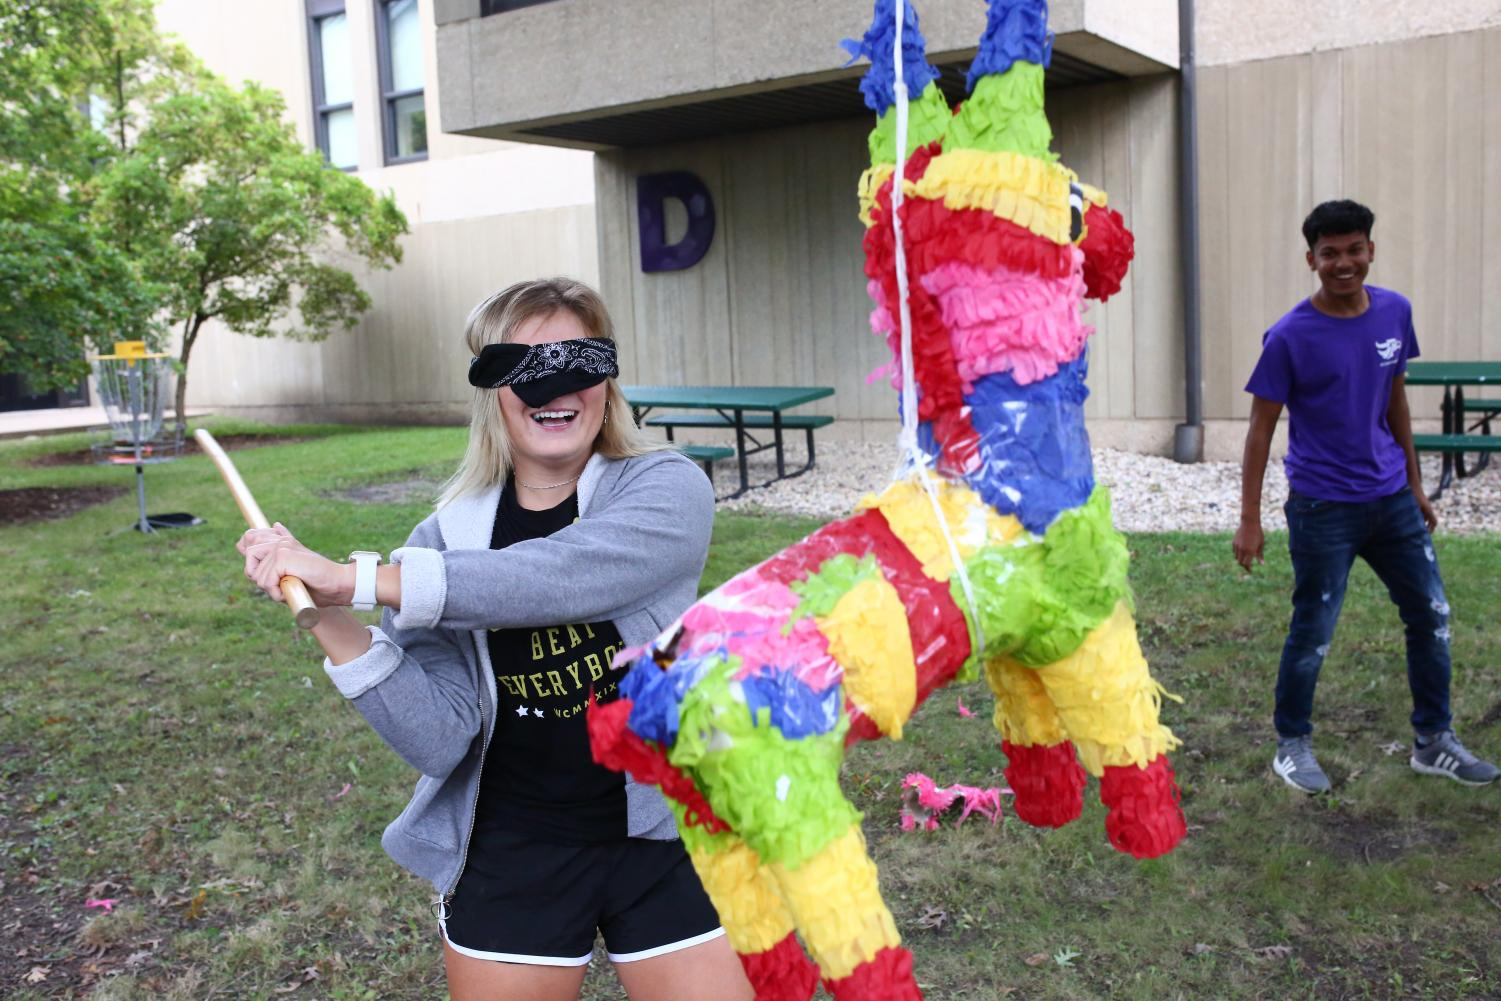 Students enjoy activities at the Hispanic Leadership Team table during Spirit Day on Sept. 11.